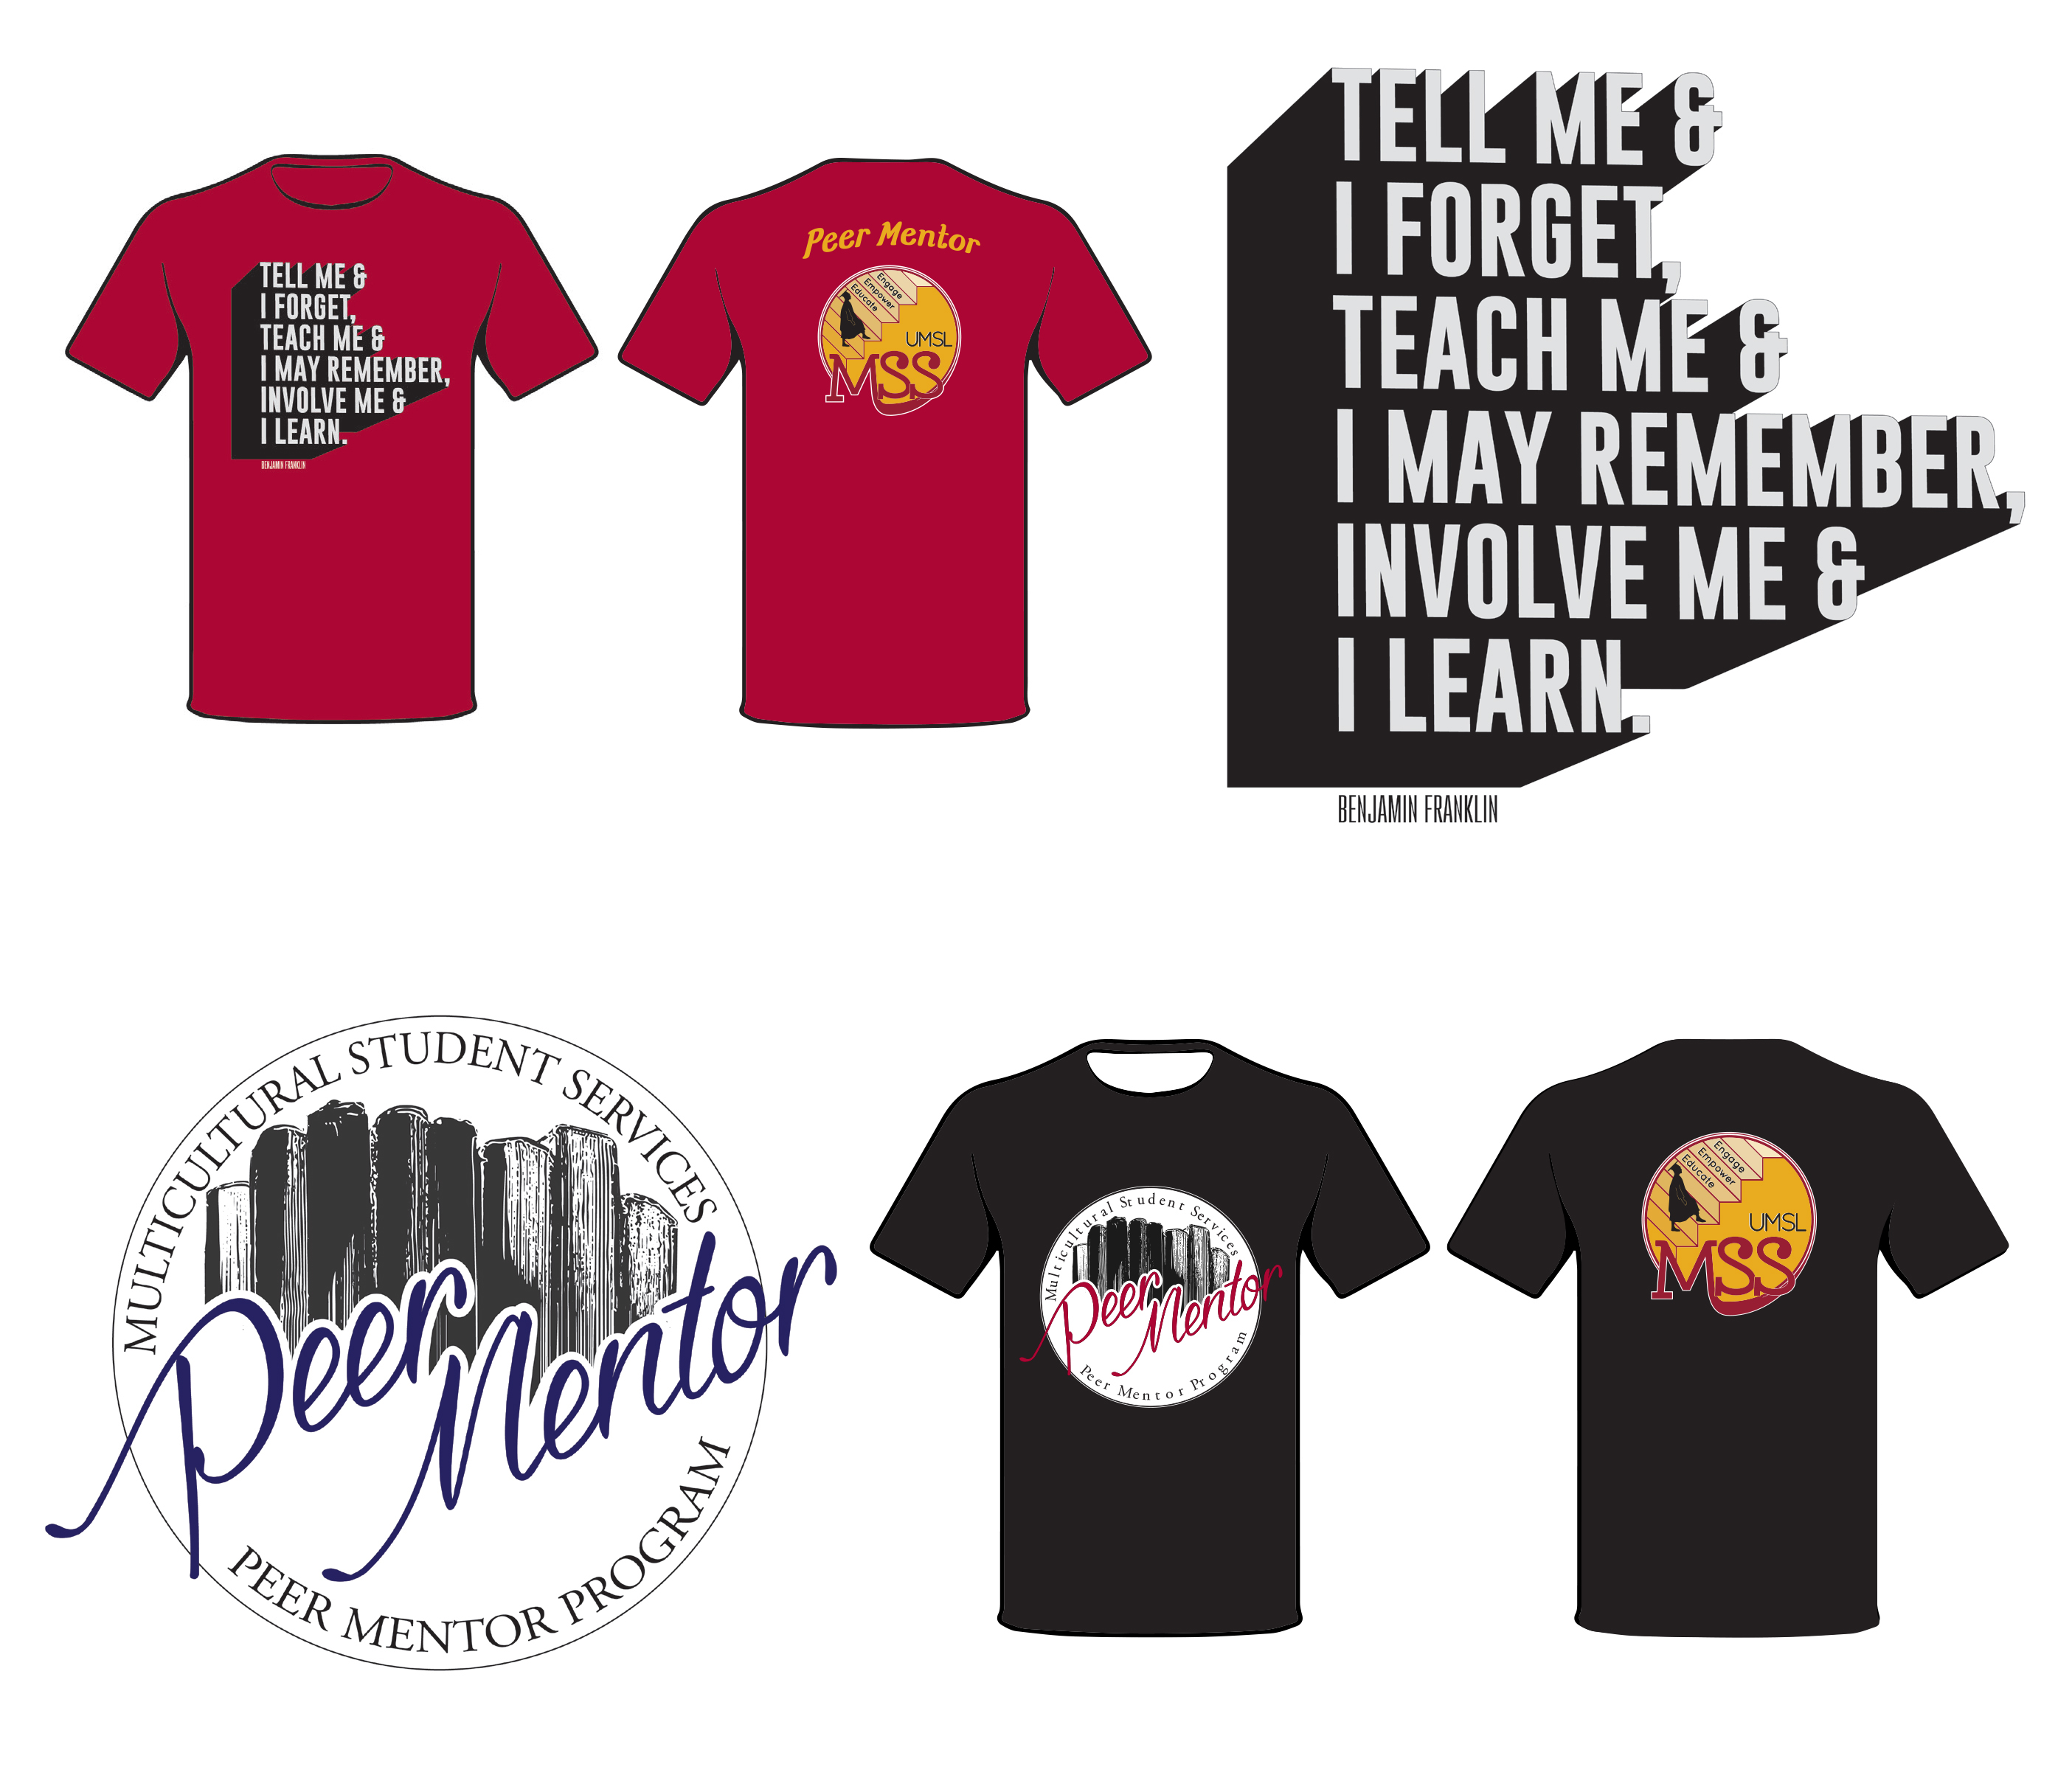 Design t shirt program - Two Shirt Designs For The Peer Mentor Program At The Multicultural Student Services At Umsl